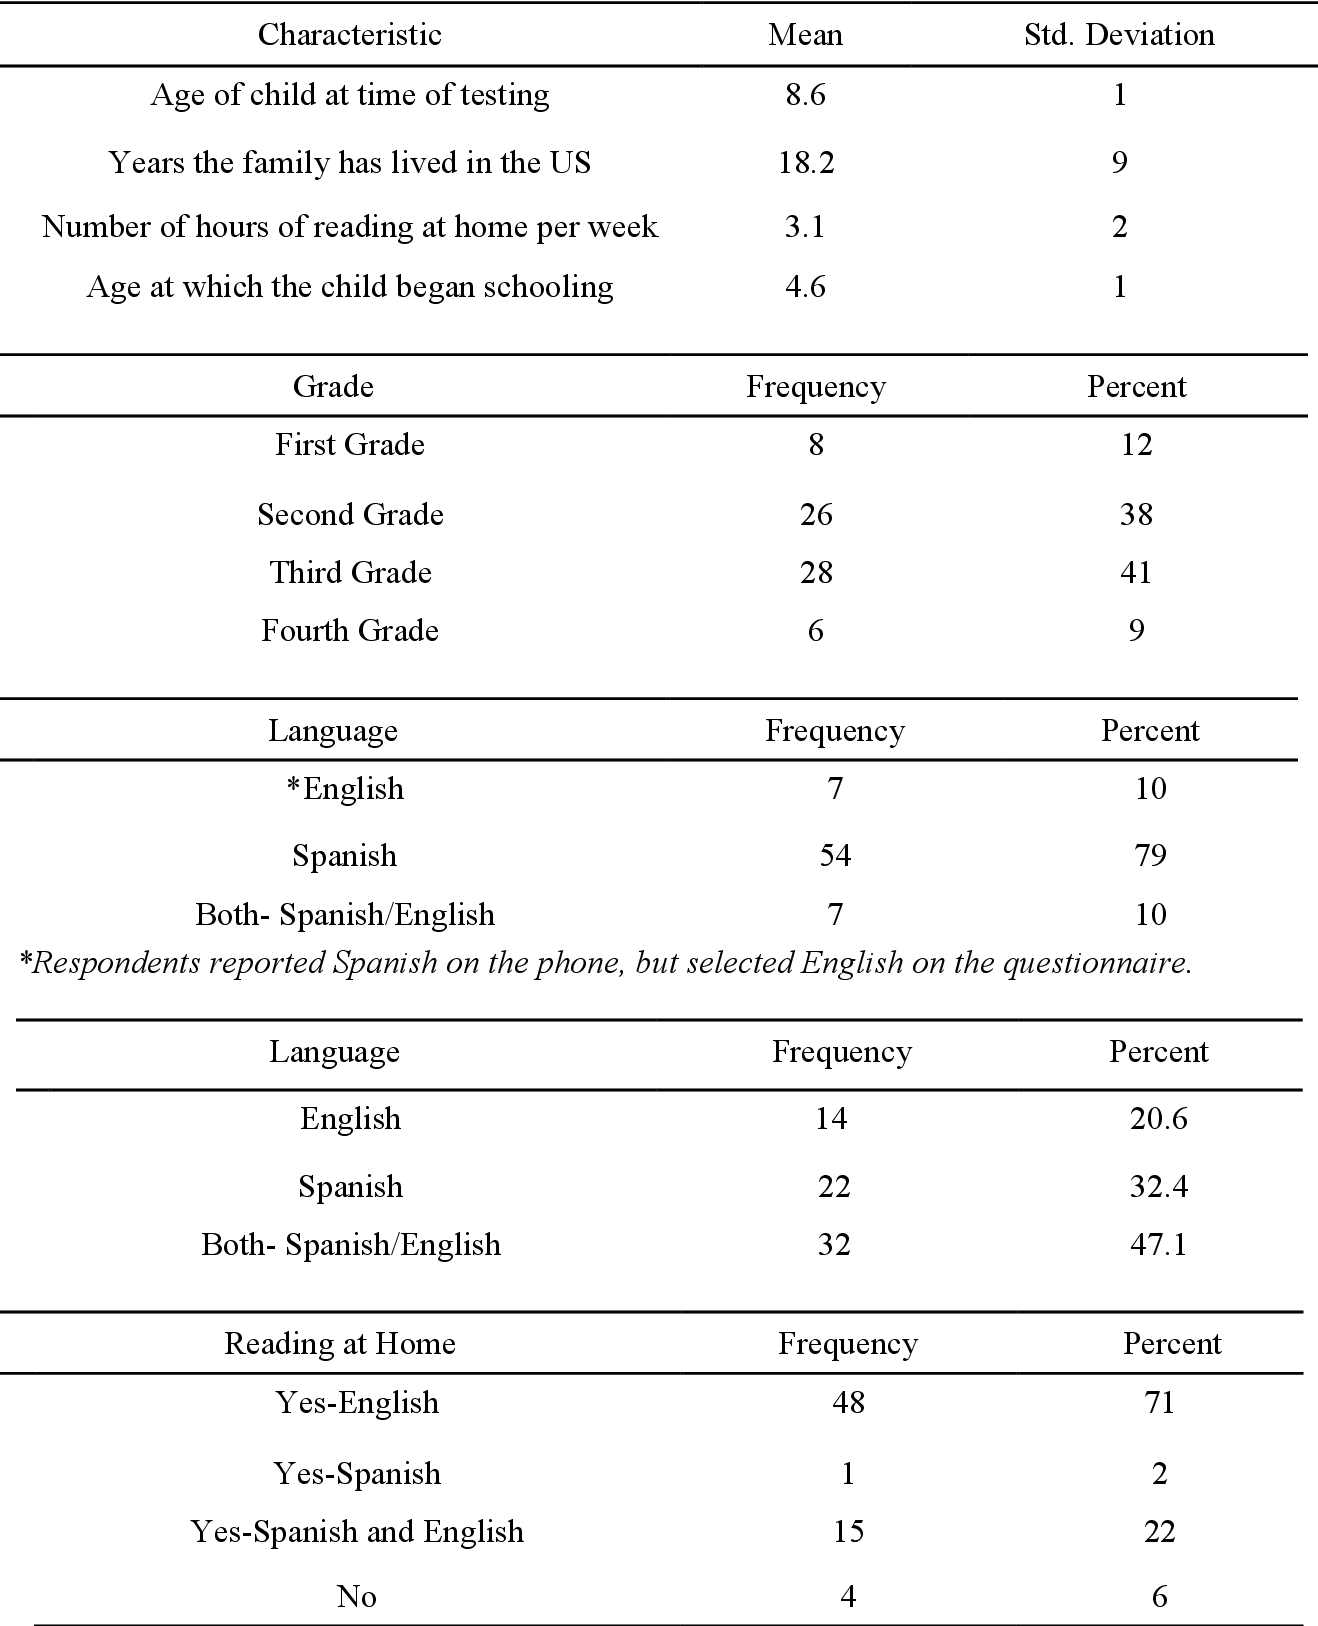 Assessment Of Reading And Dyslexia In Spanish Speaking English Language Learners Semantic Scholar How to say assessment in spanish. dyslexia in spanish speaking english